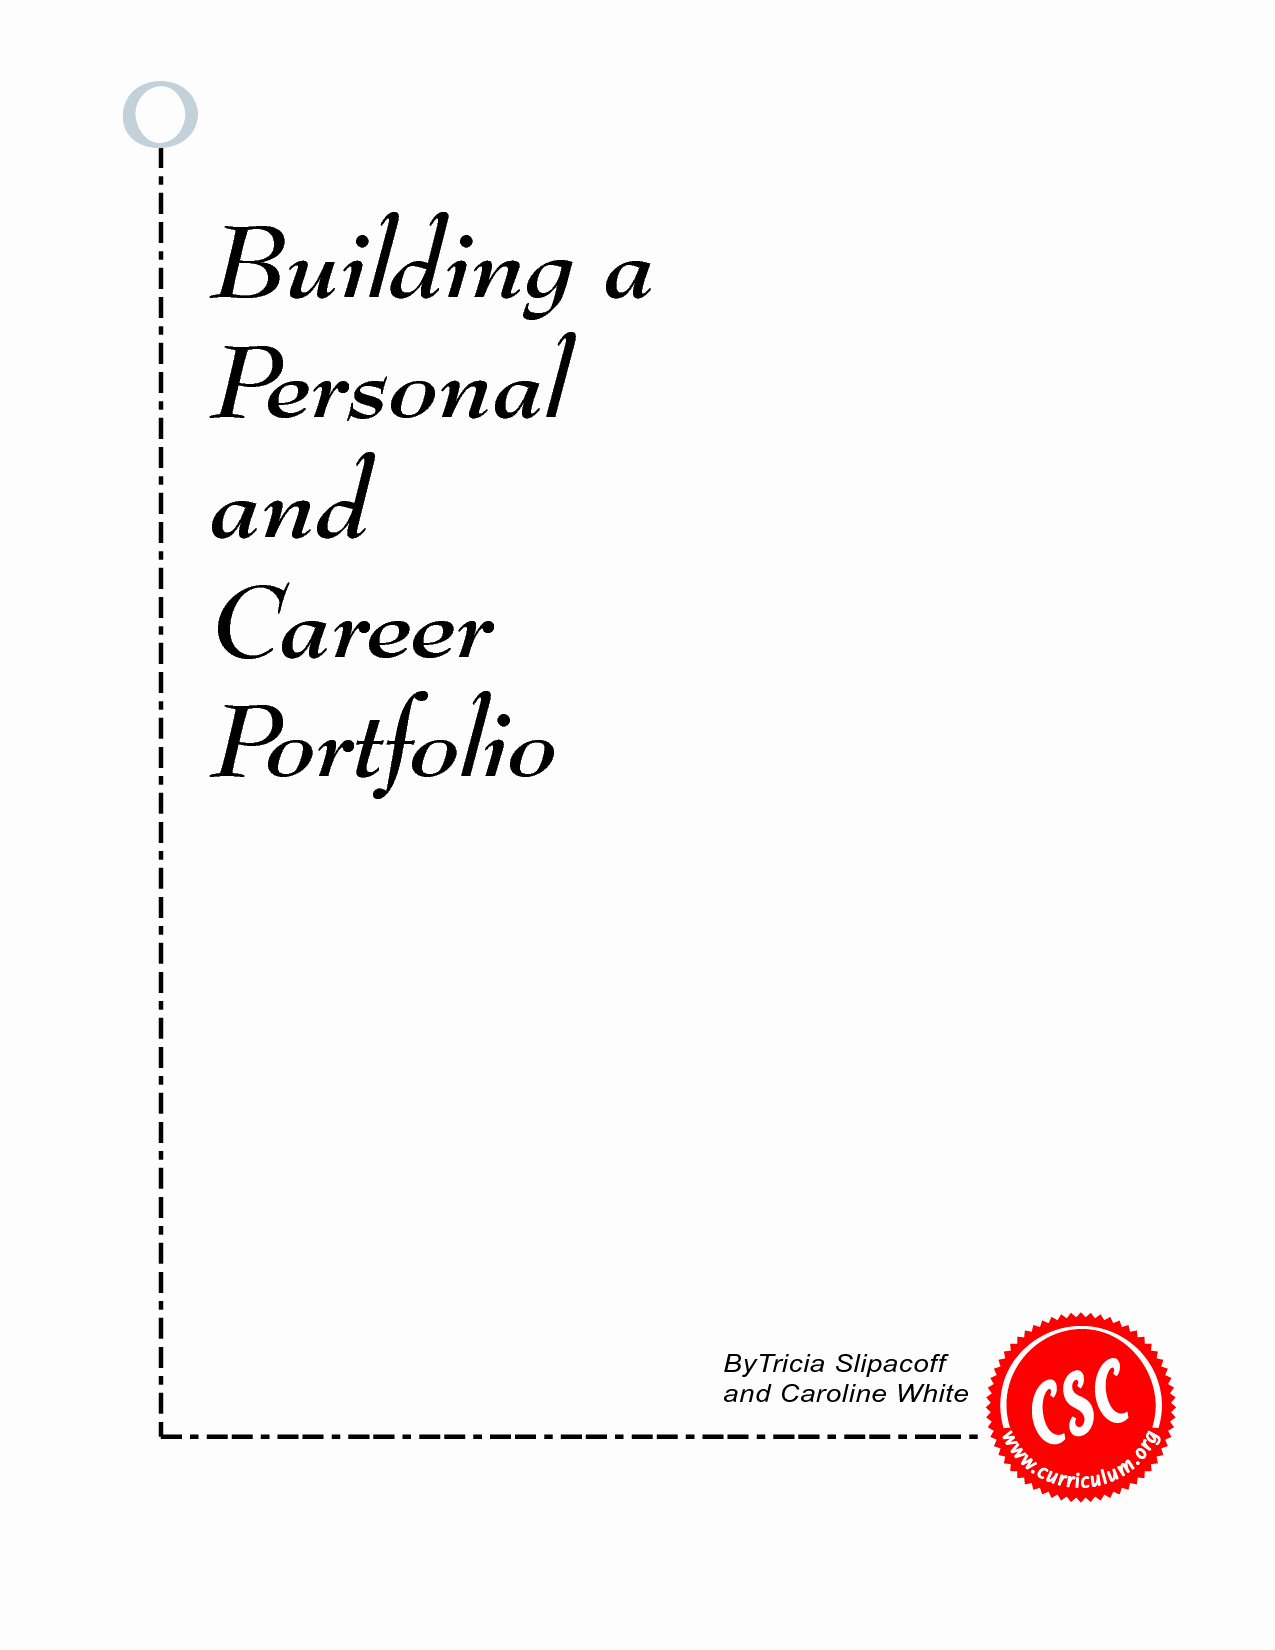 Portfolio Cover Page Template Best Of 10 Professional Portfolio Cover Page Template